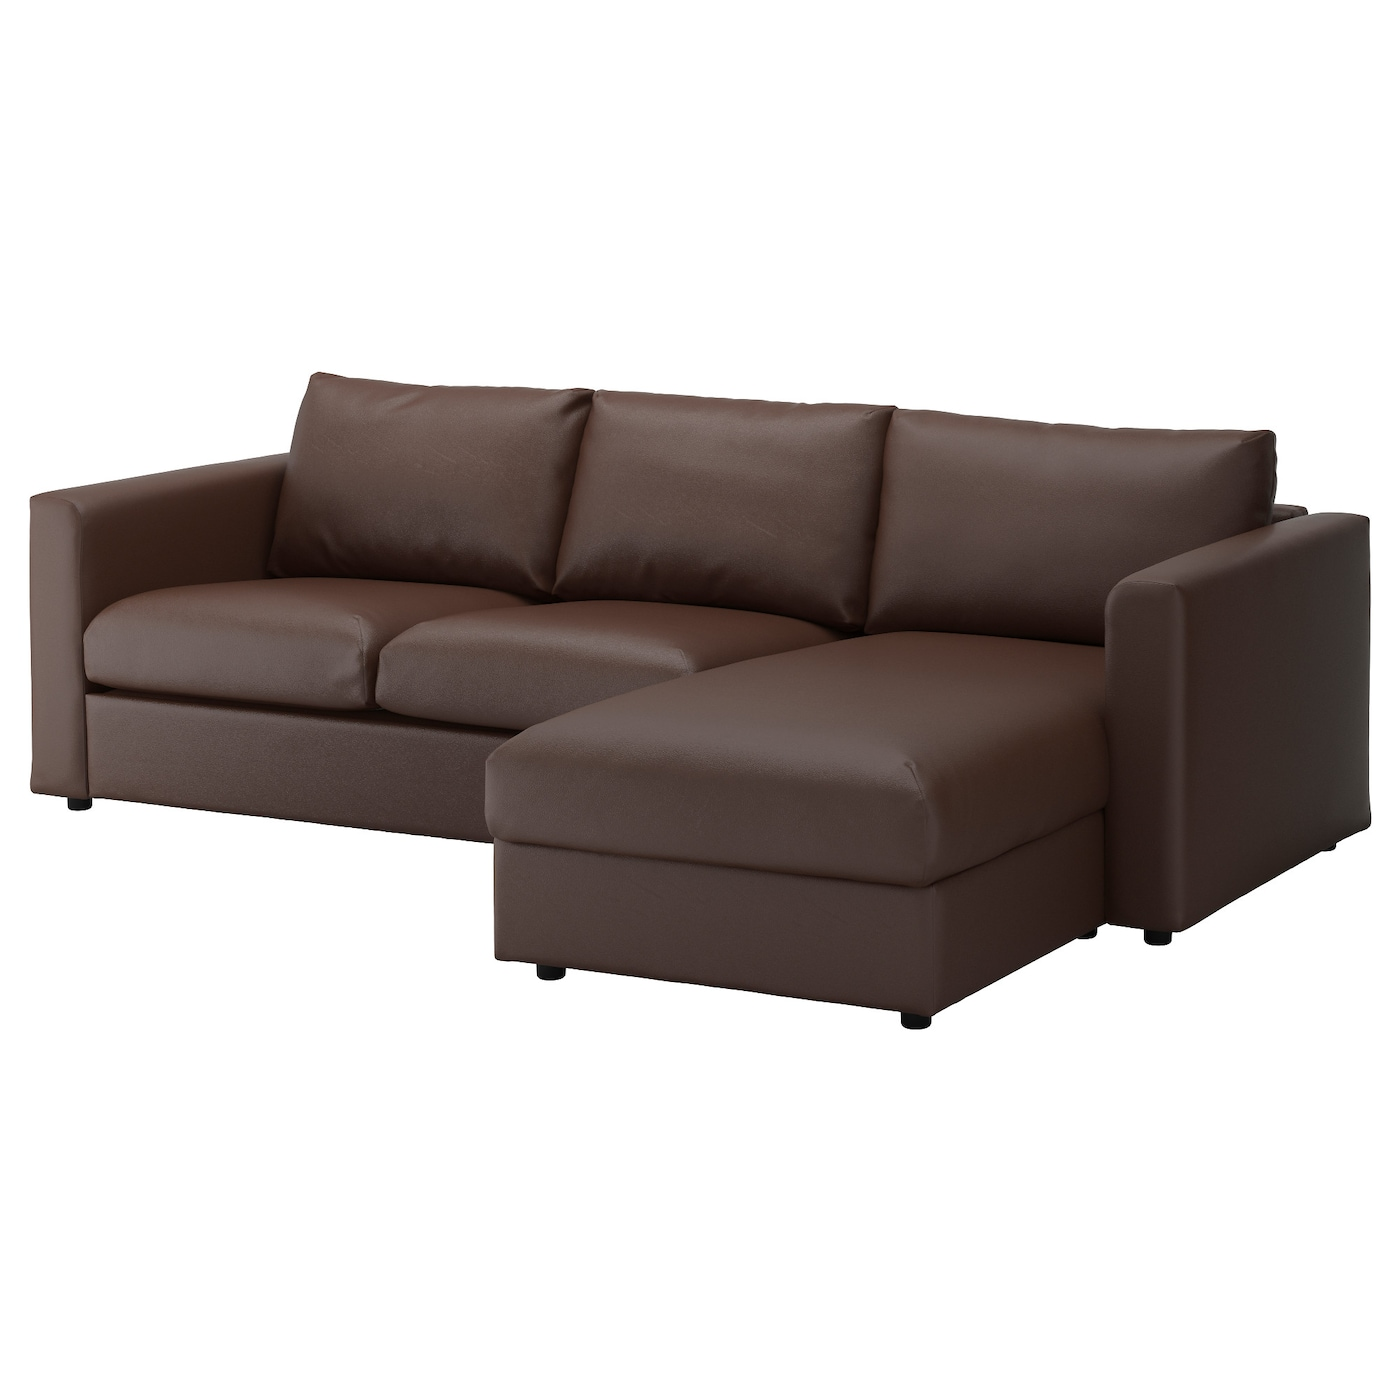 Vimle 3 seat sofa with chaise longue farsta dark brown ikea for Brown leather sofa with chaise lounge